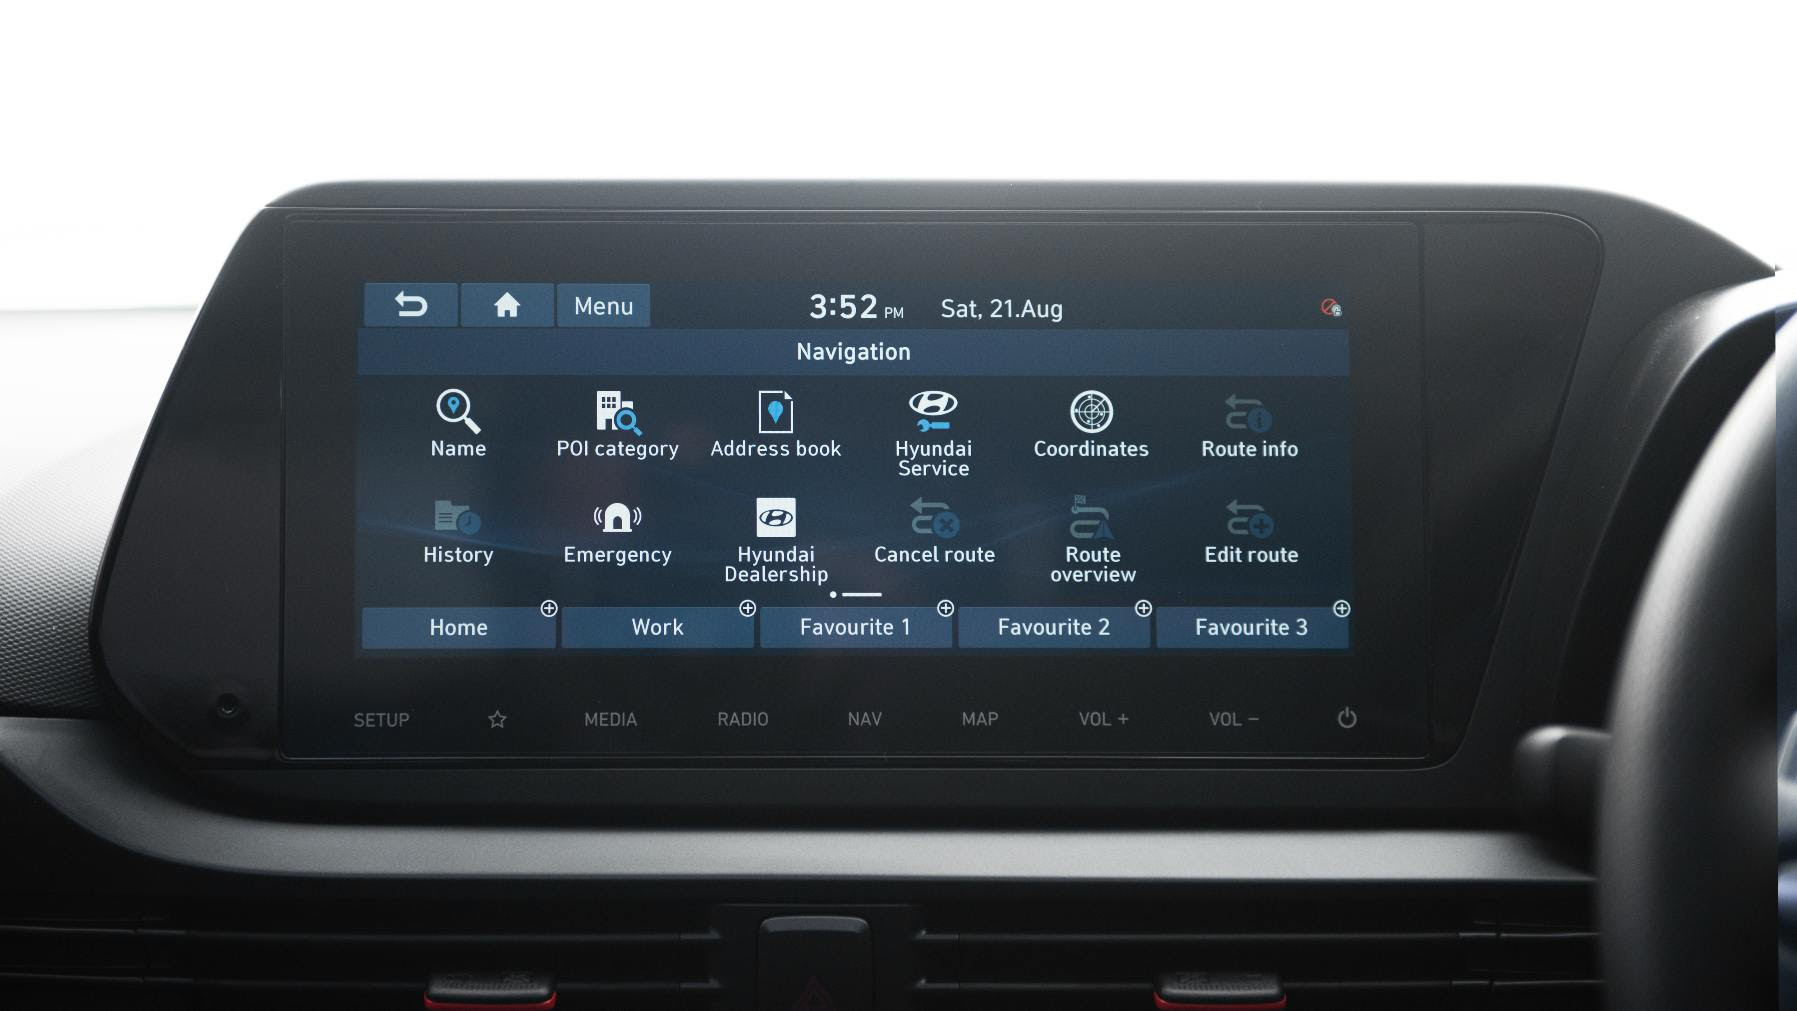 The 10.25-inch screen is legible in all conditions, and works seamlessly. Image: Hyundai